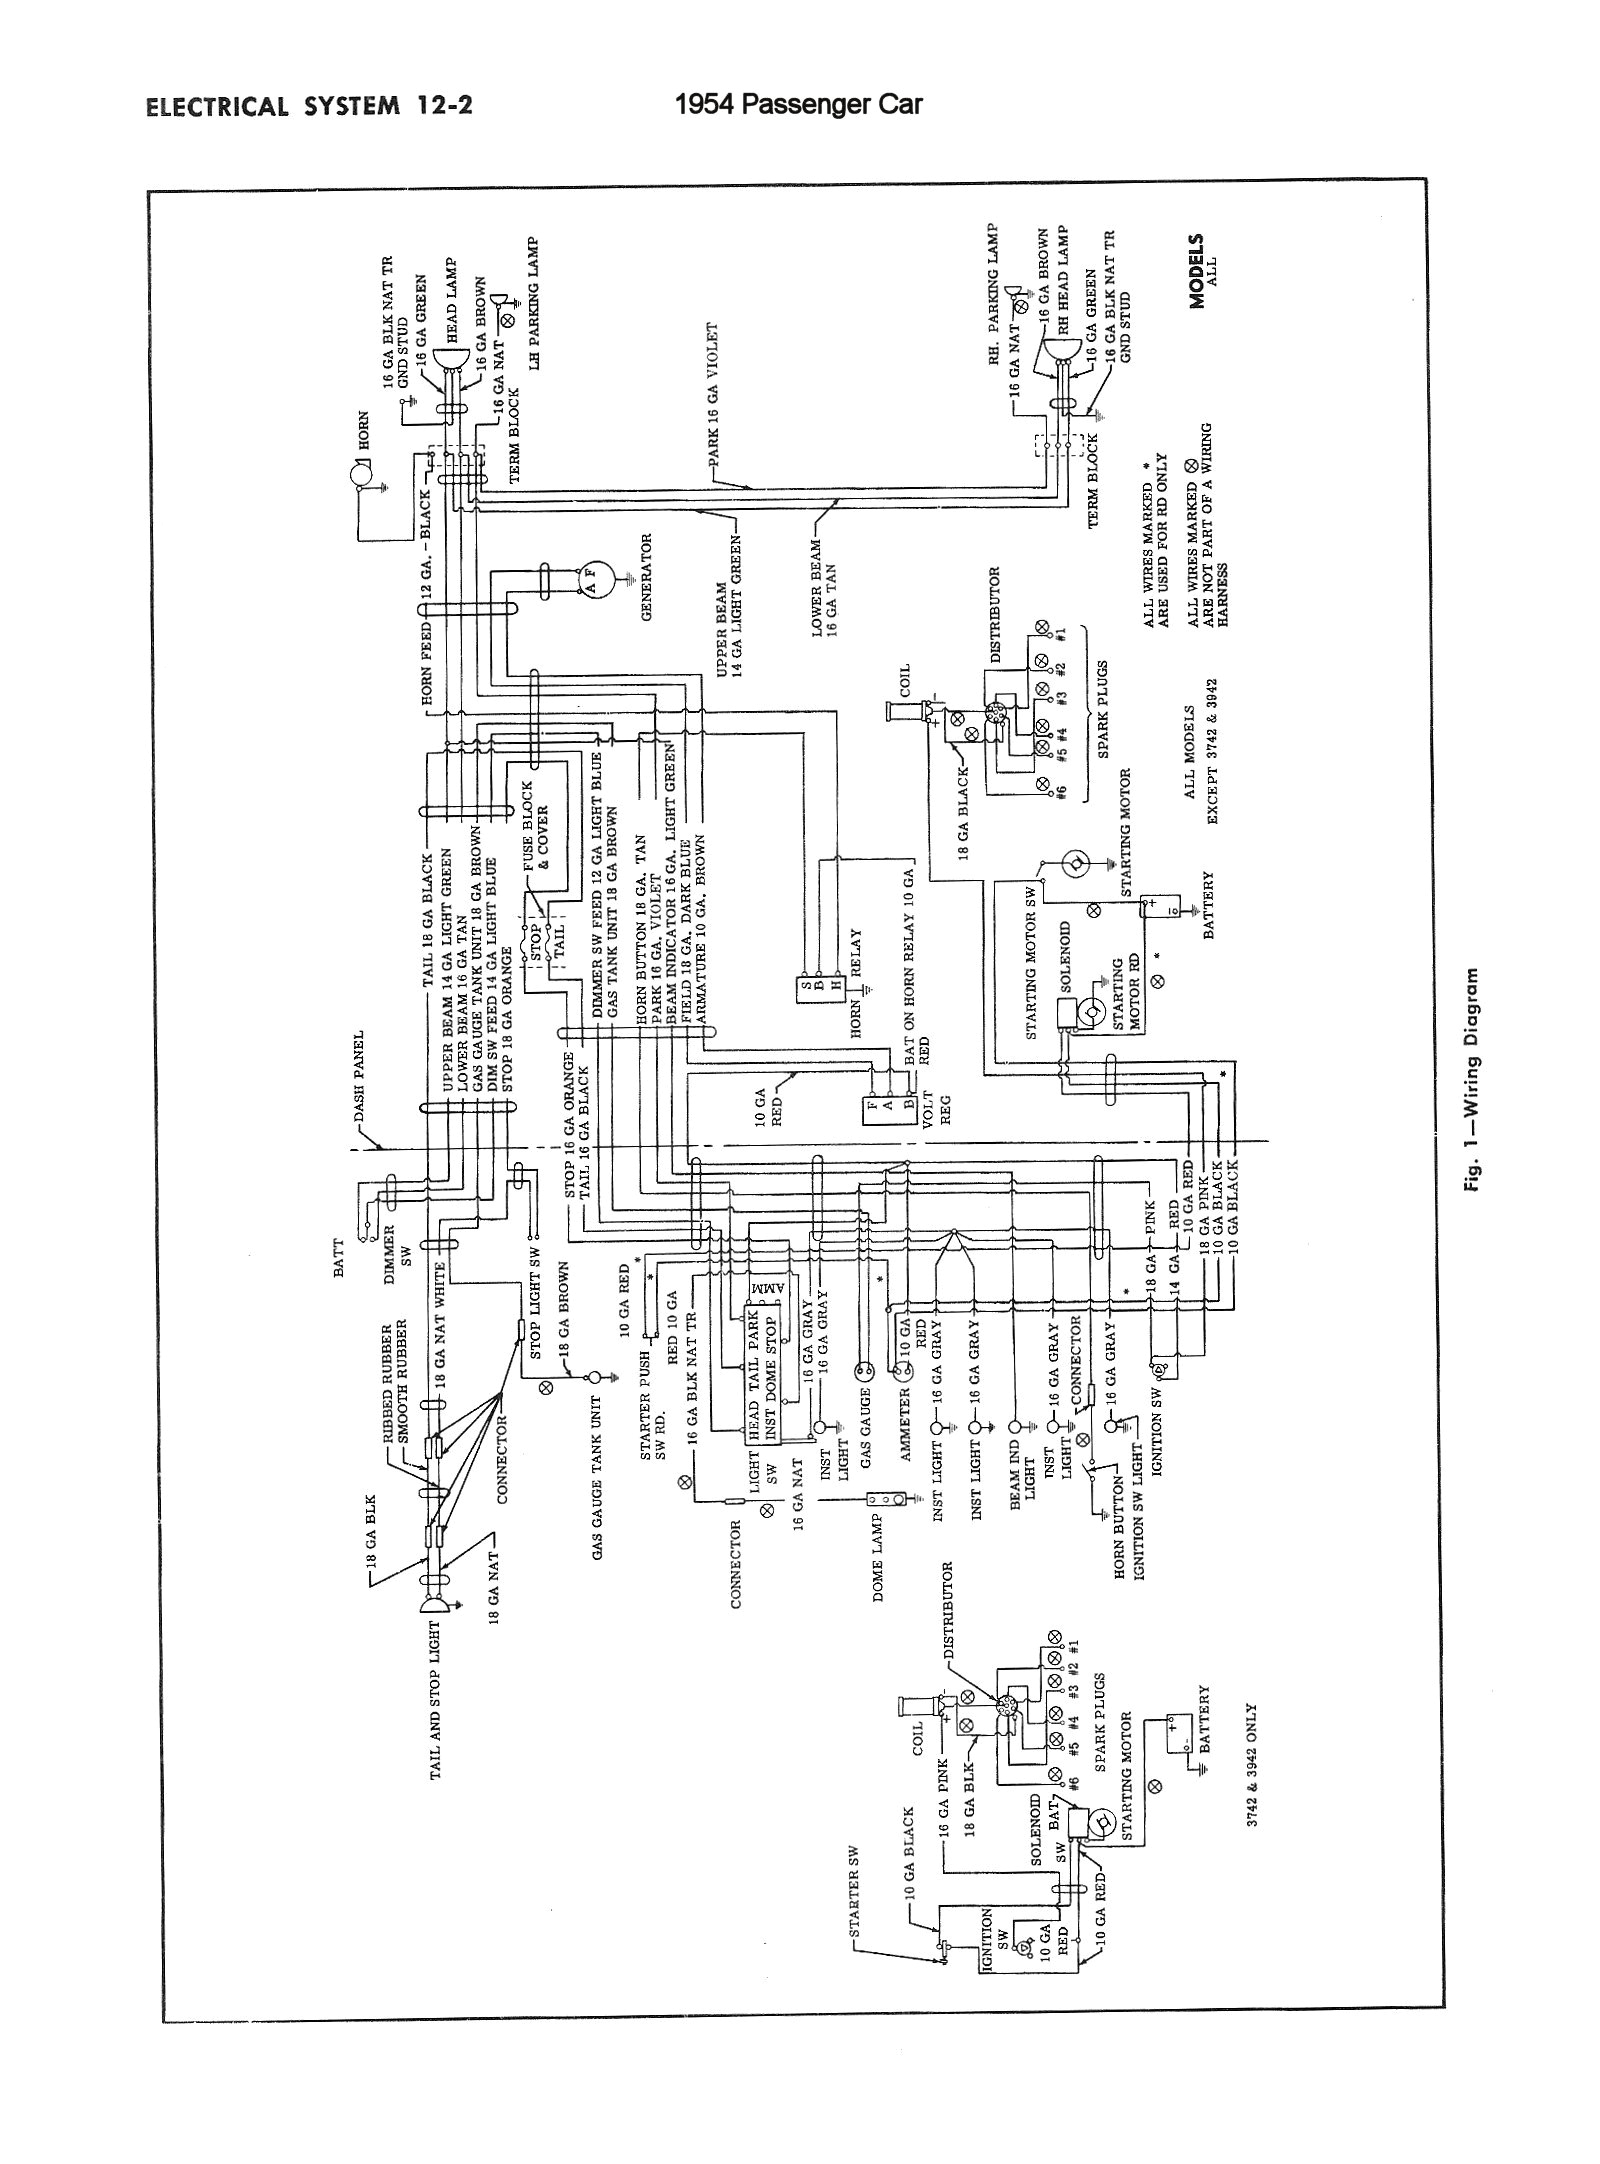 59 chevy wiring diagram wiring diagram wiring diagram for 1959 chevy pickup